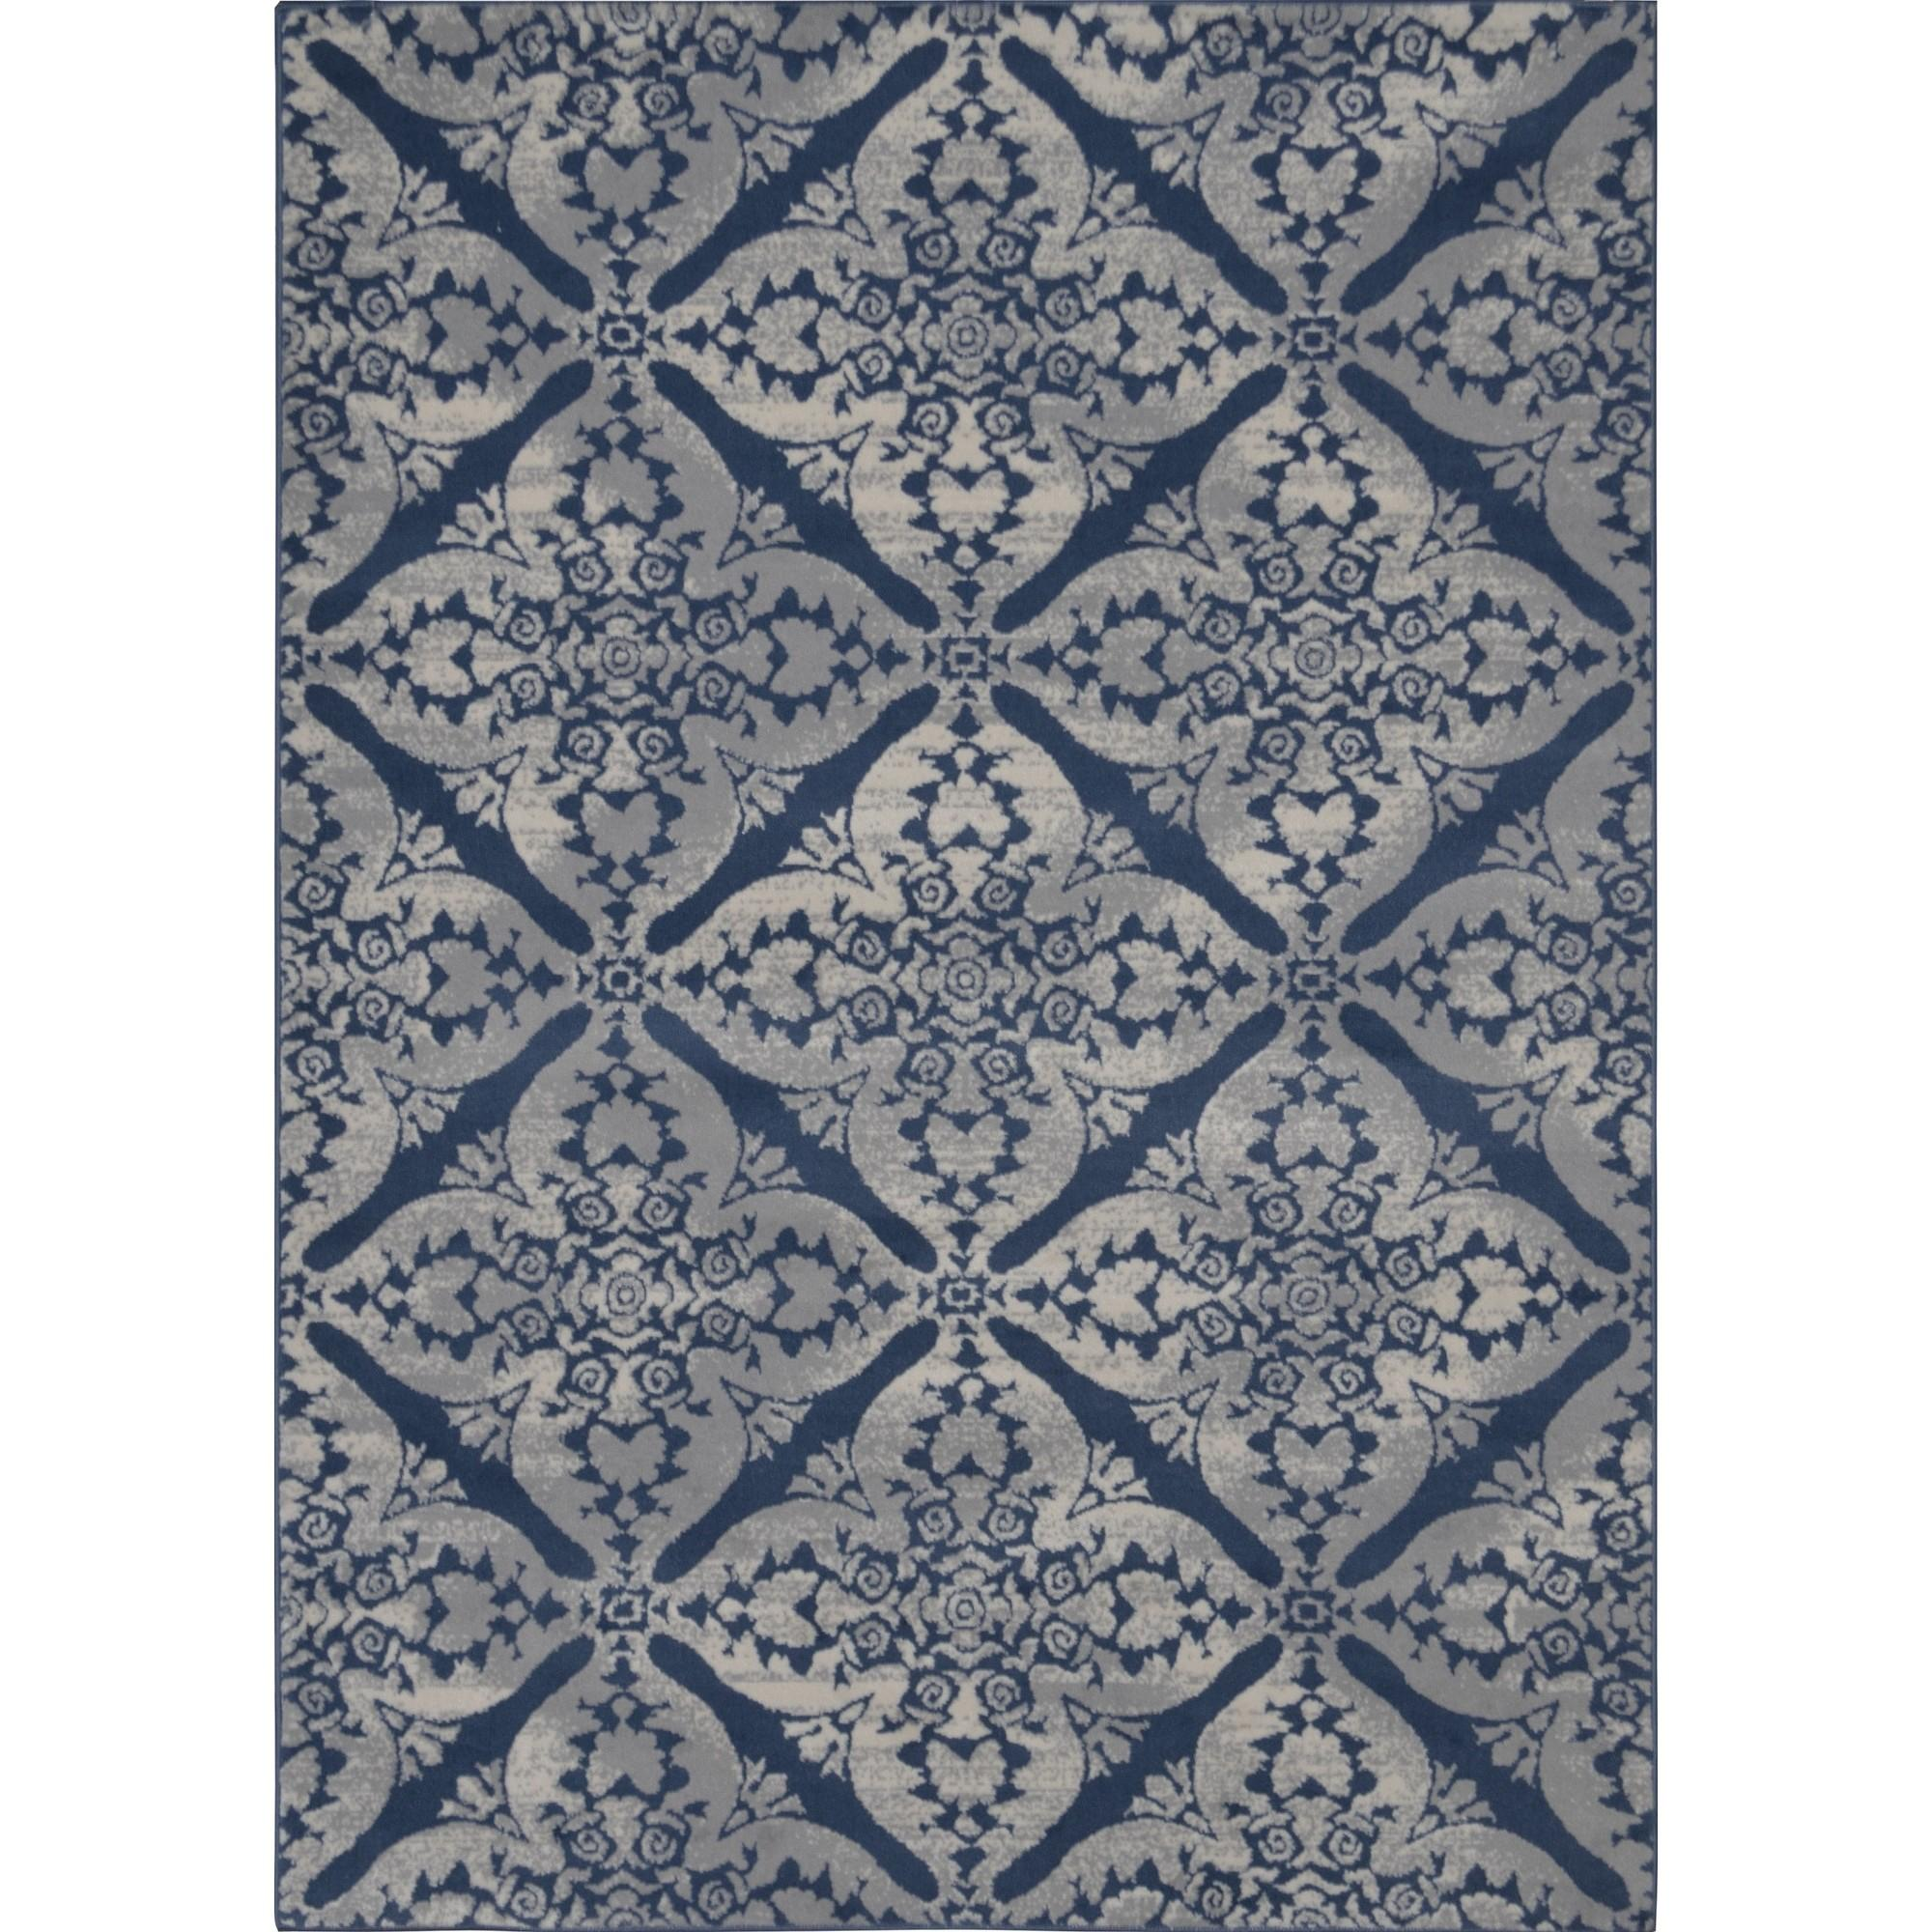 Decor Solid Navy Blue Area Rug